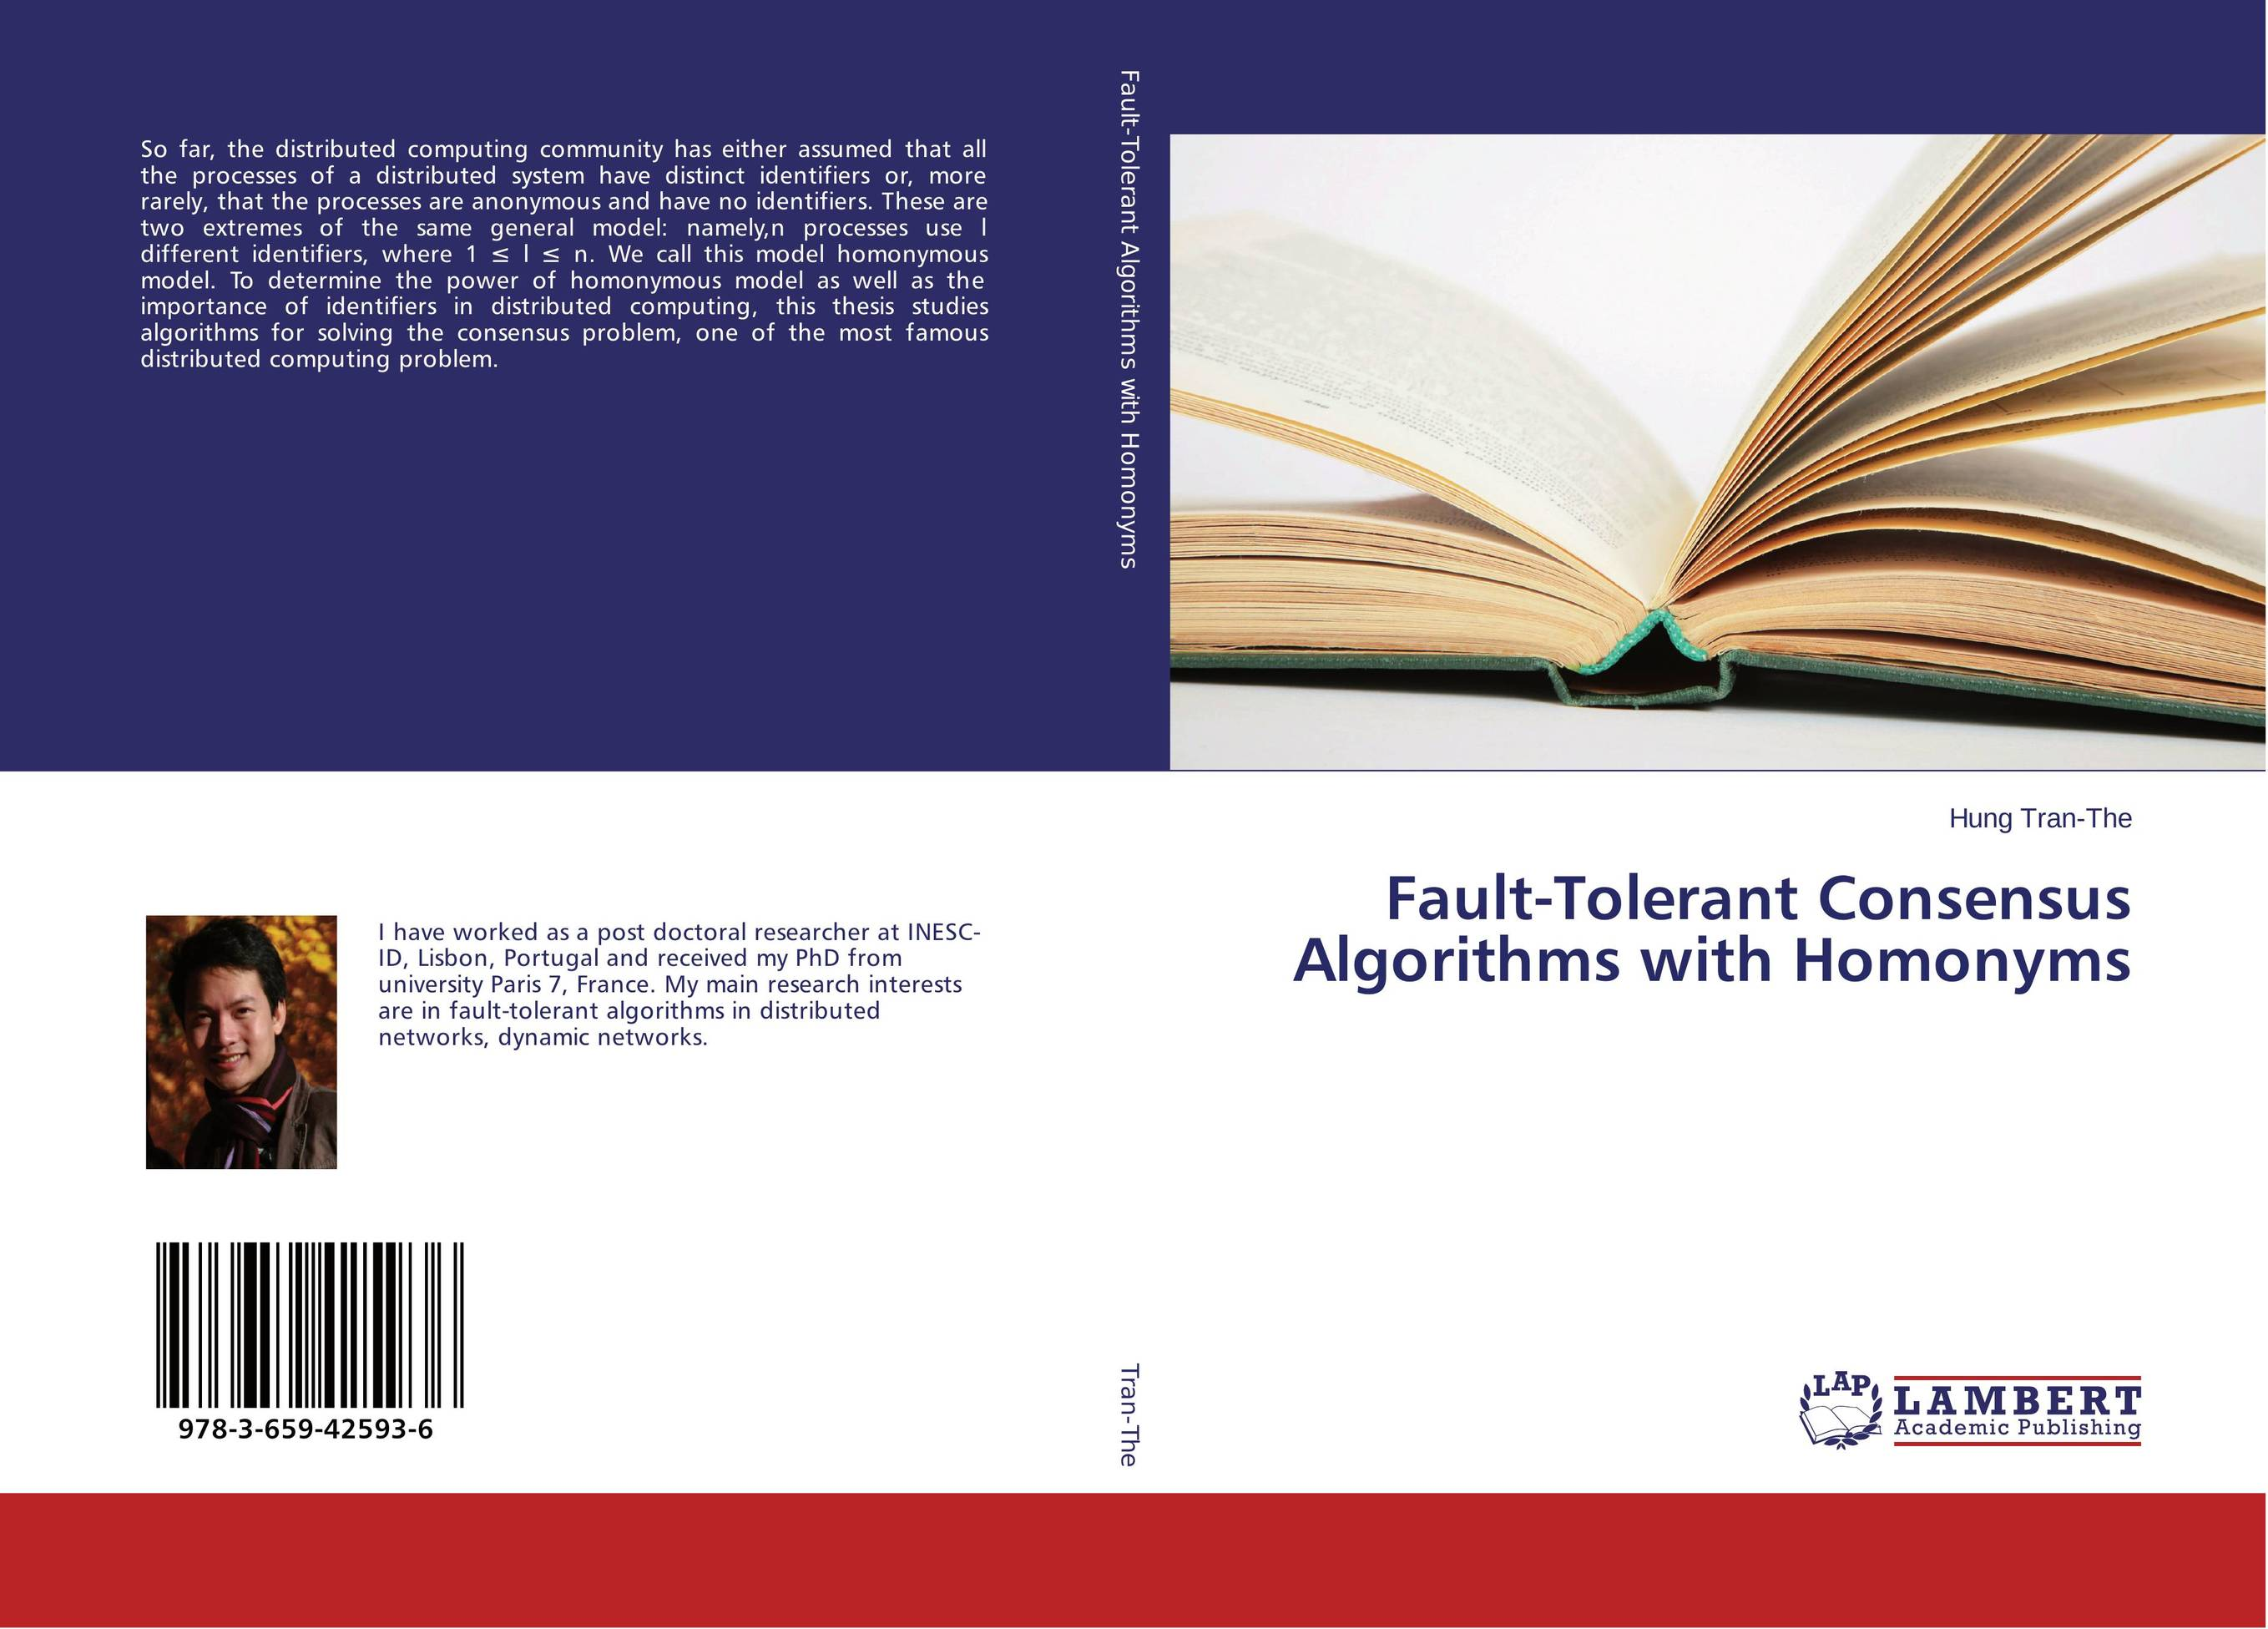 Fault-Tolerant Consensus Algorithms with Homonyms